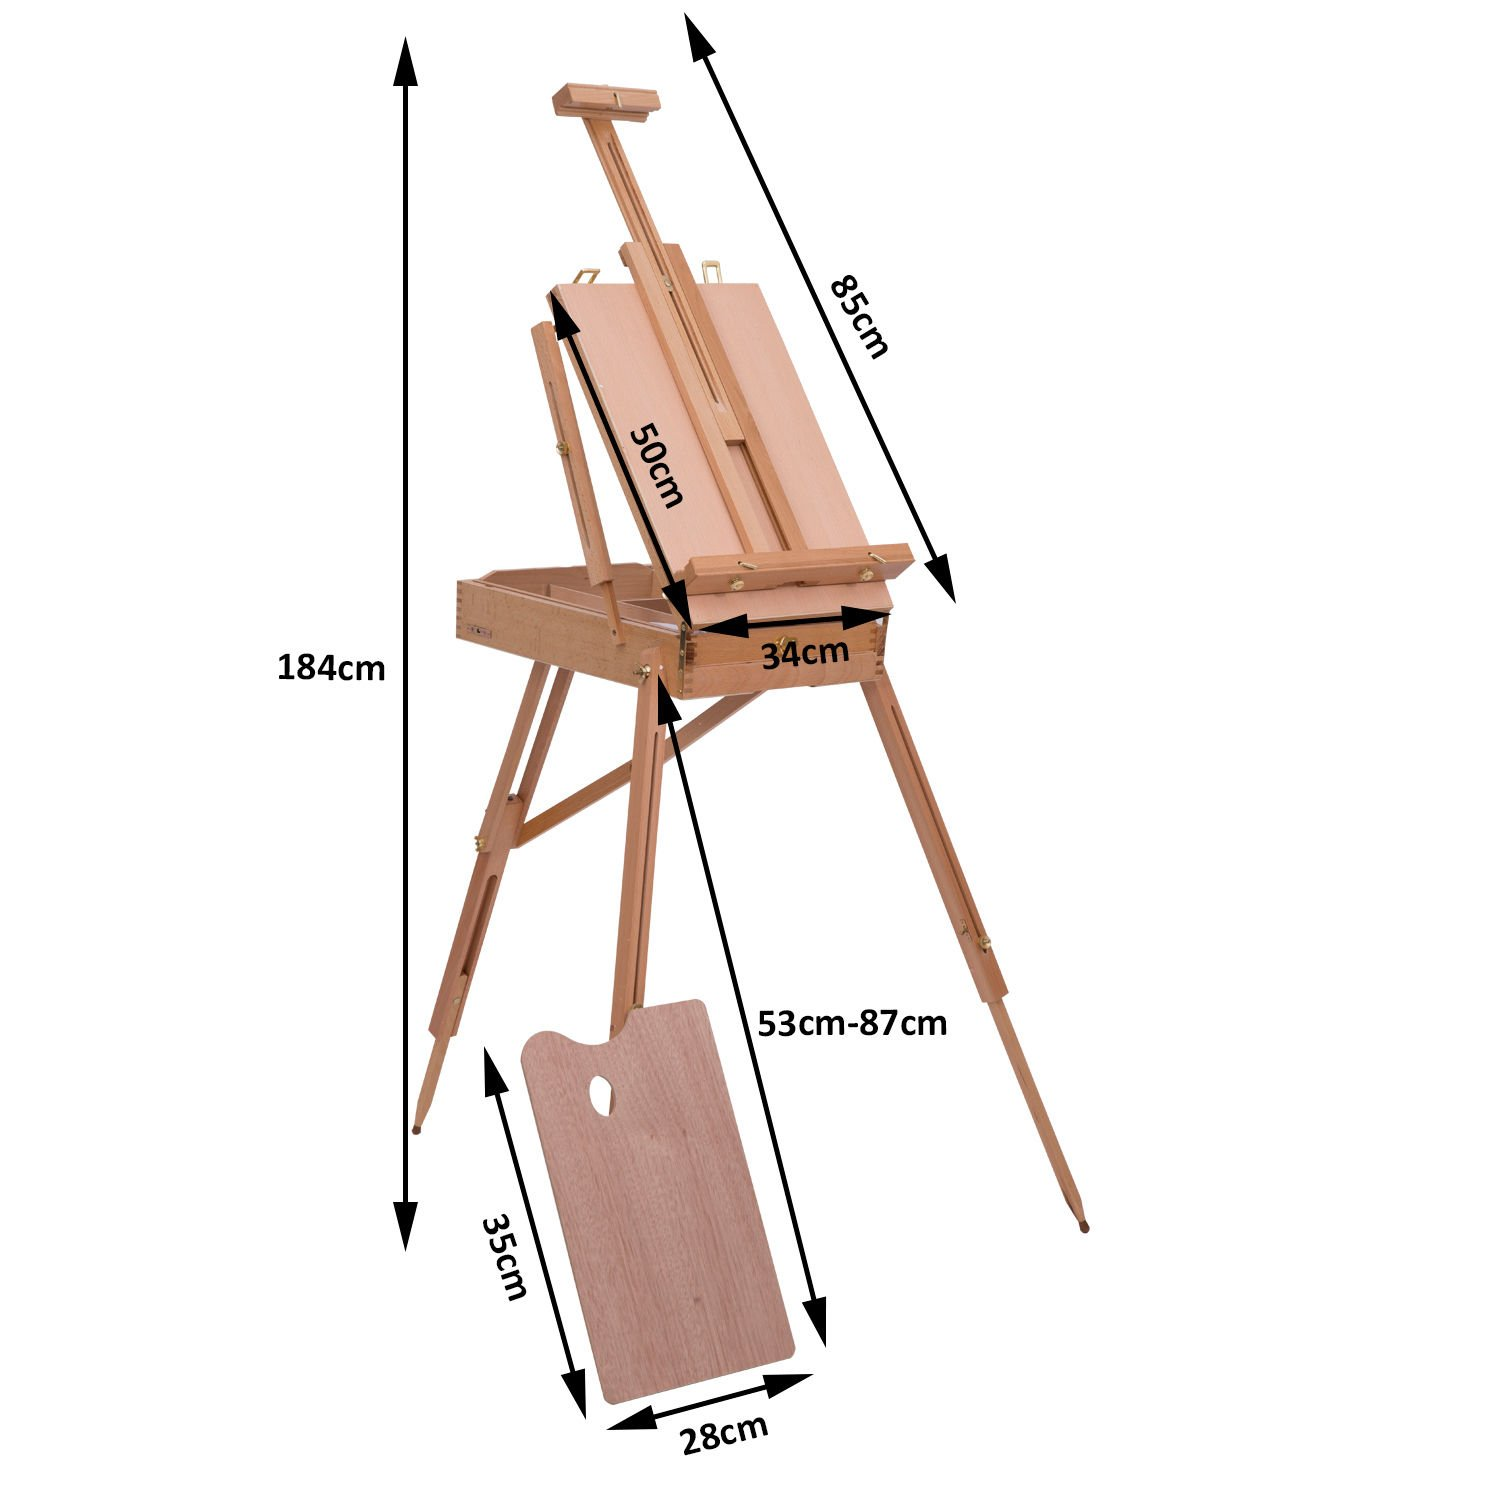 HOMCOM A-Frame Wooden Professional Floor Studio Easel for Painting Holder Sketching Table Art Display Exhibition Adjustable Height 174-230 cm